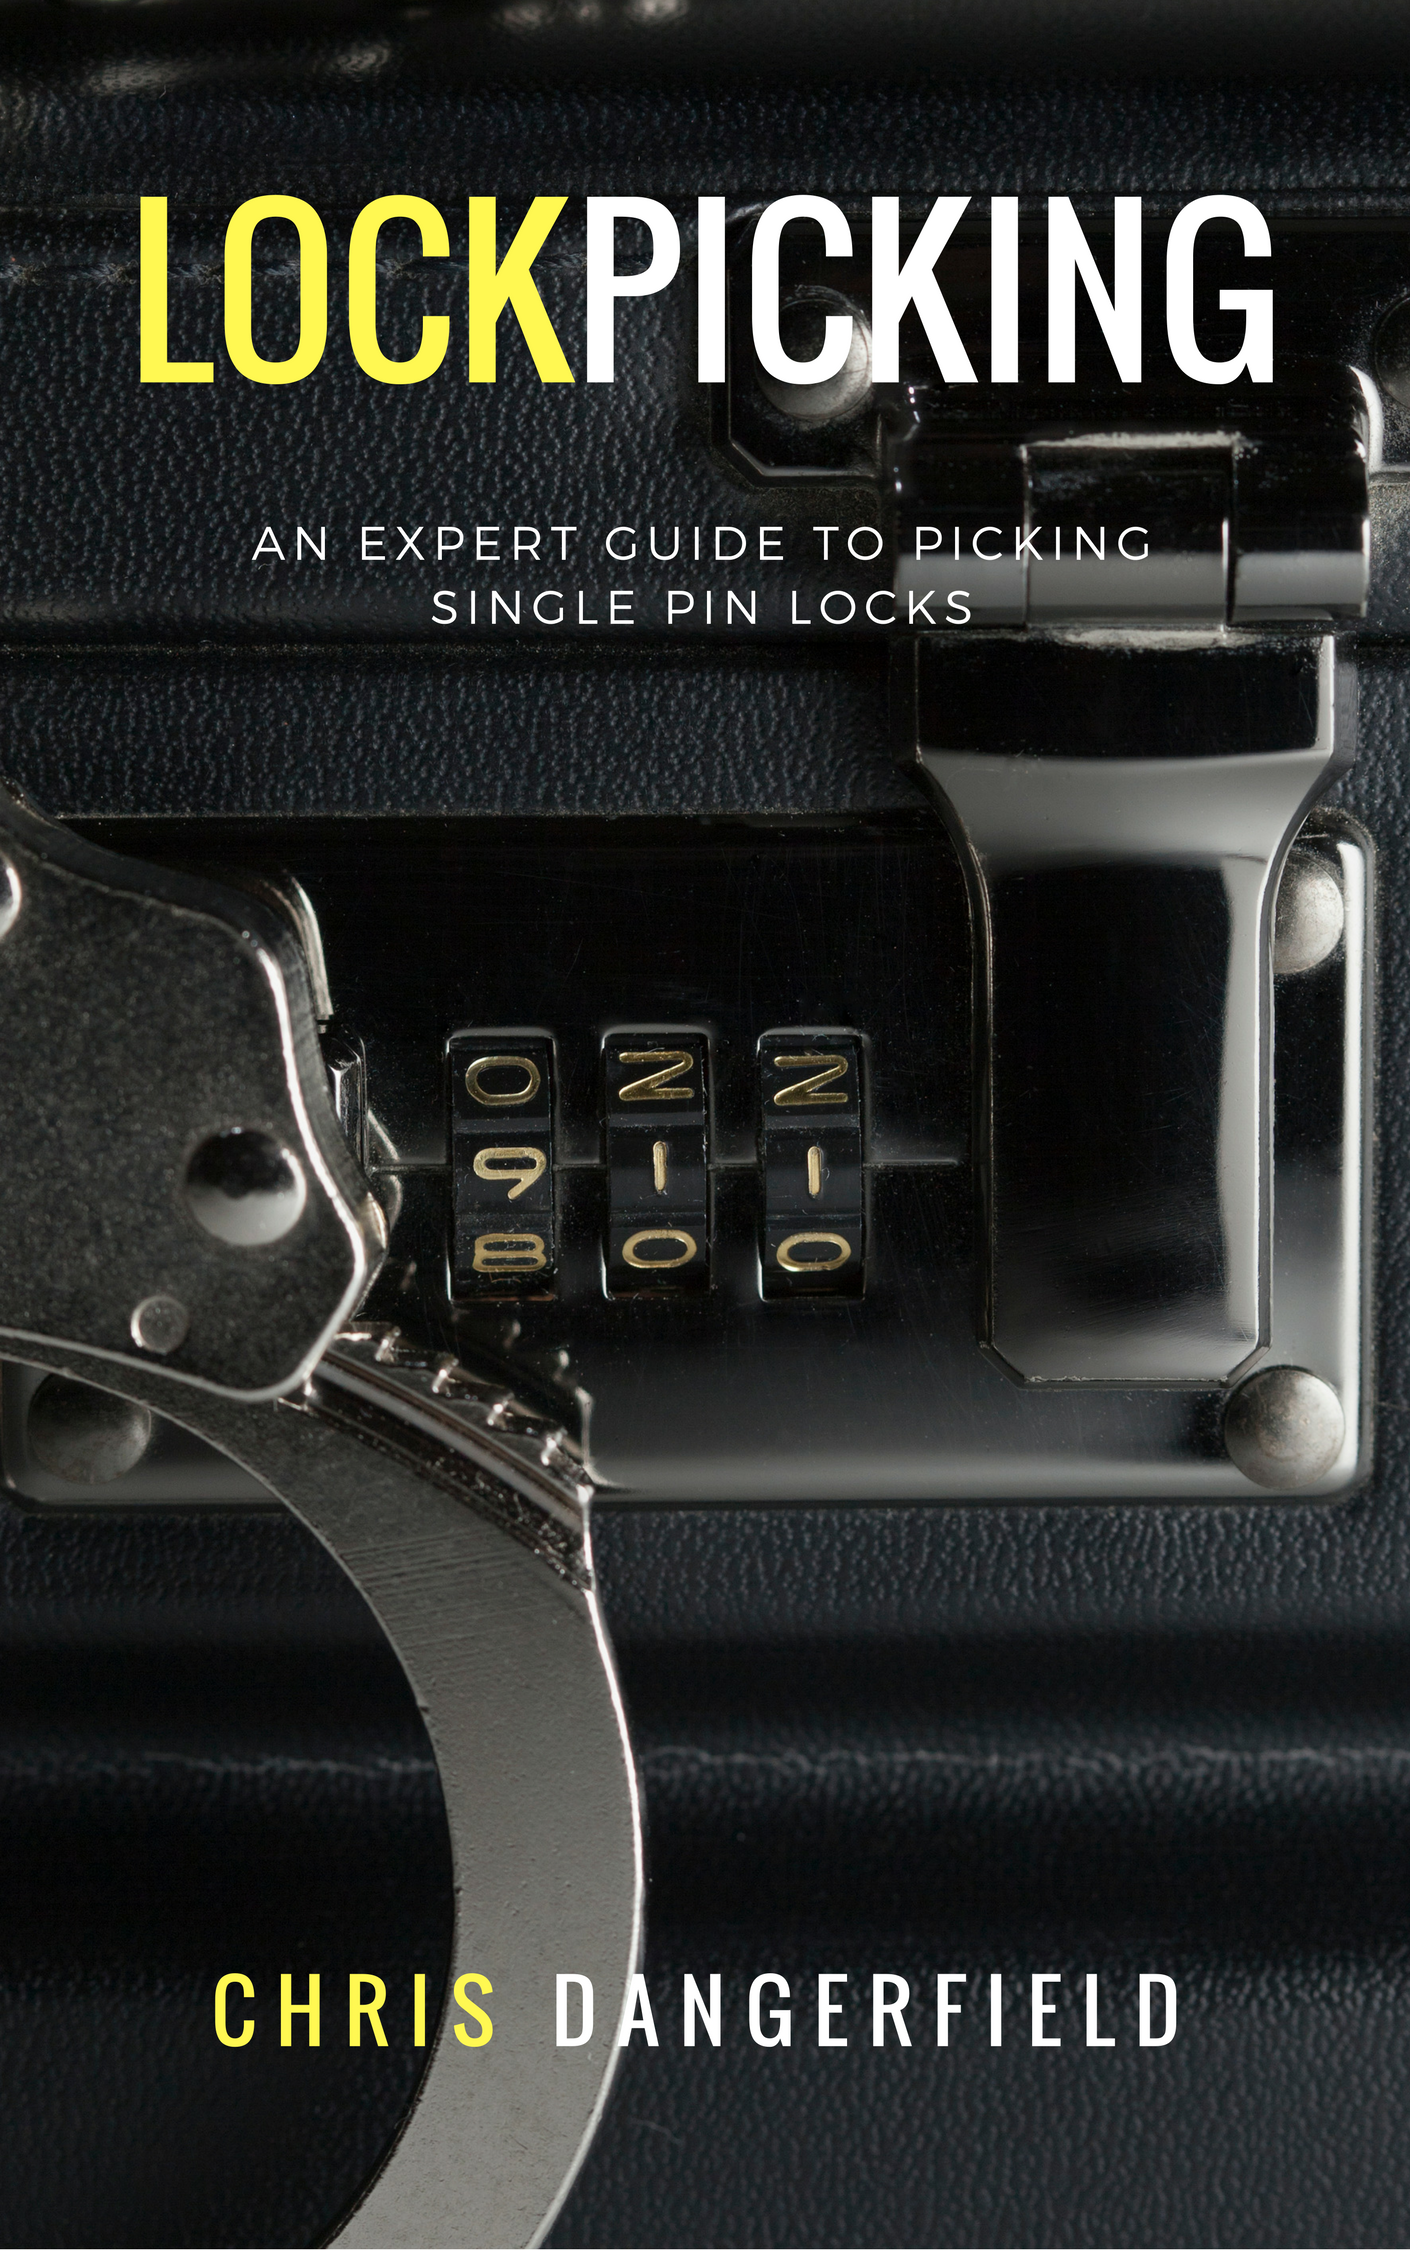 UKBumpkeys Digital Lock Picking Guide v1.6 (eBook PDF) for Sale - UKBumpKeys